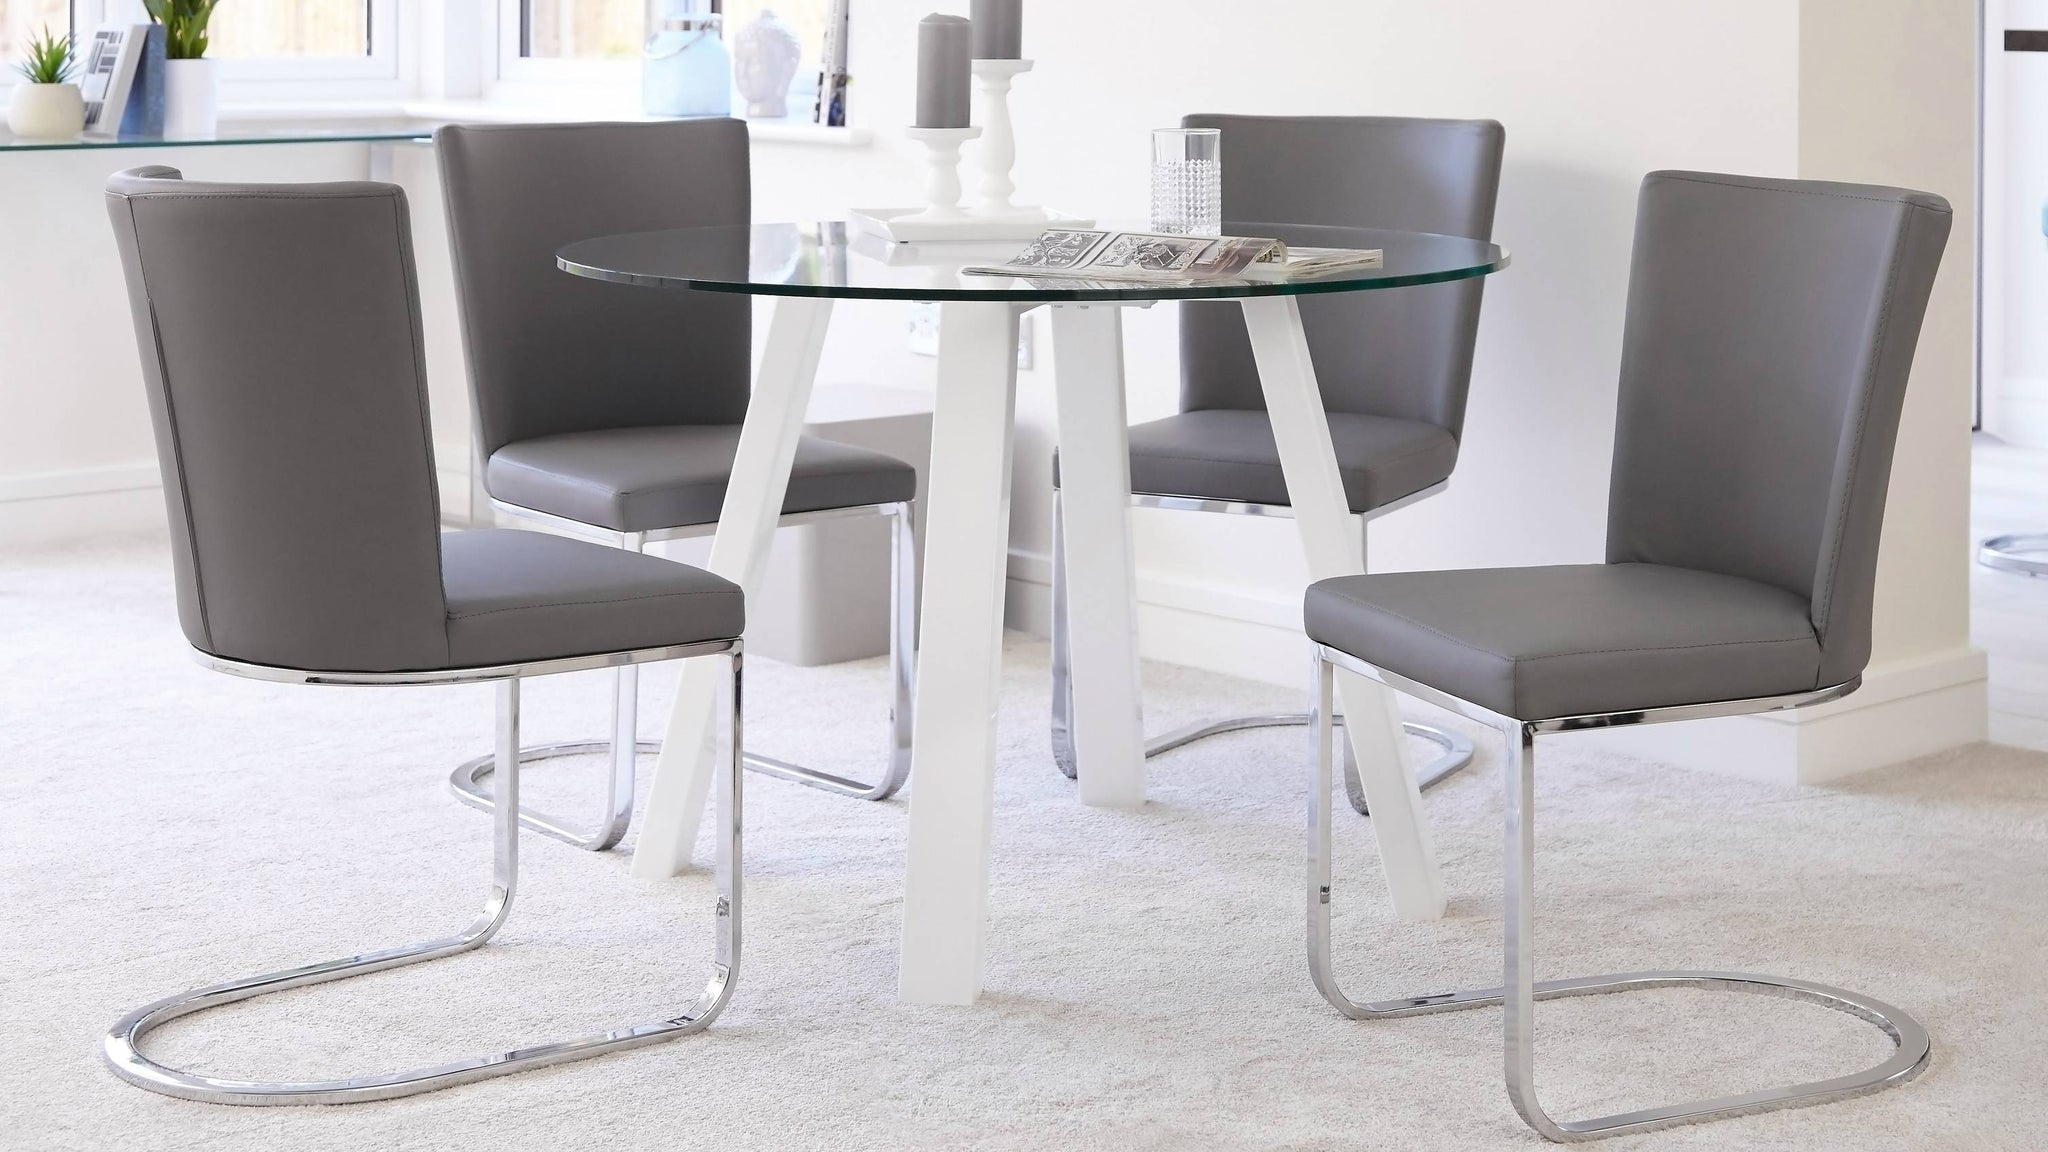 Modern Round Glass Table 4 Seater